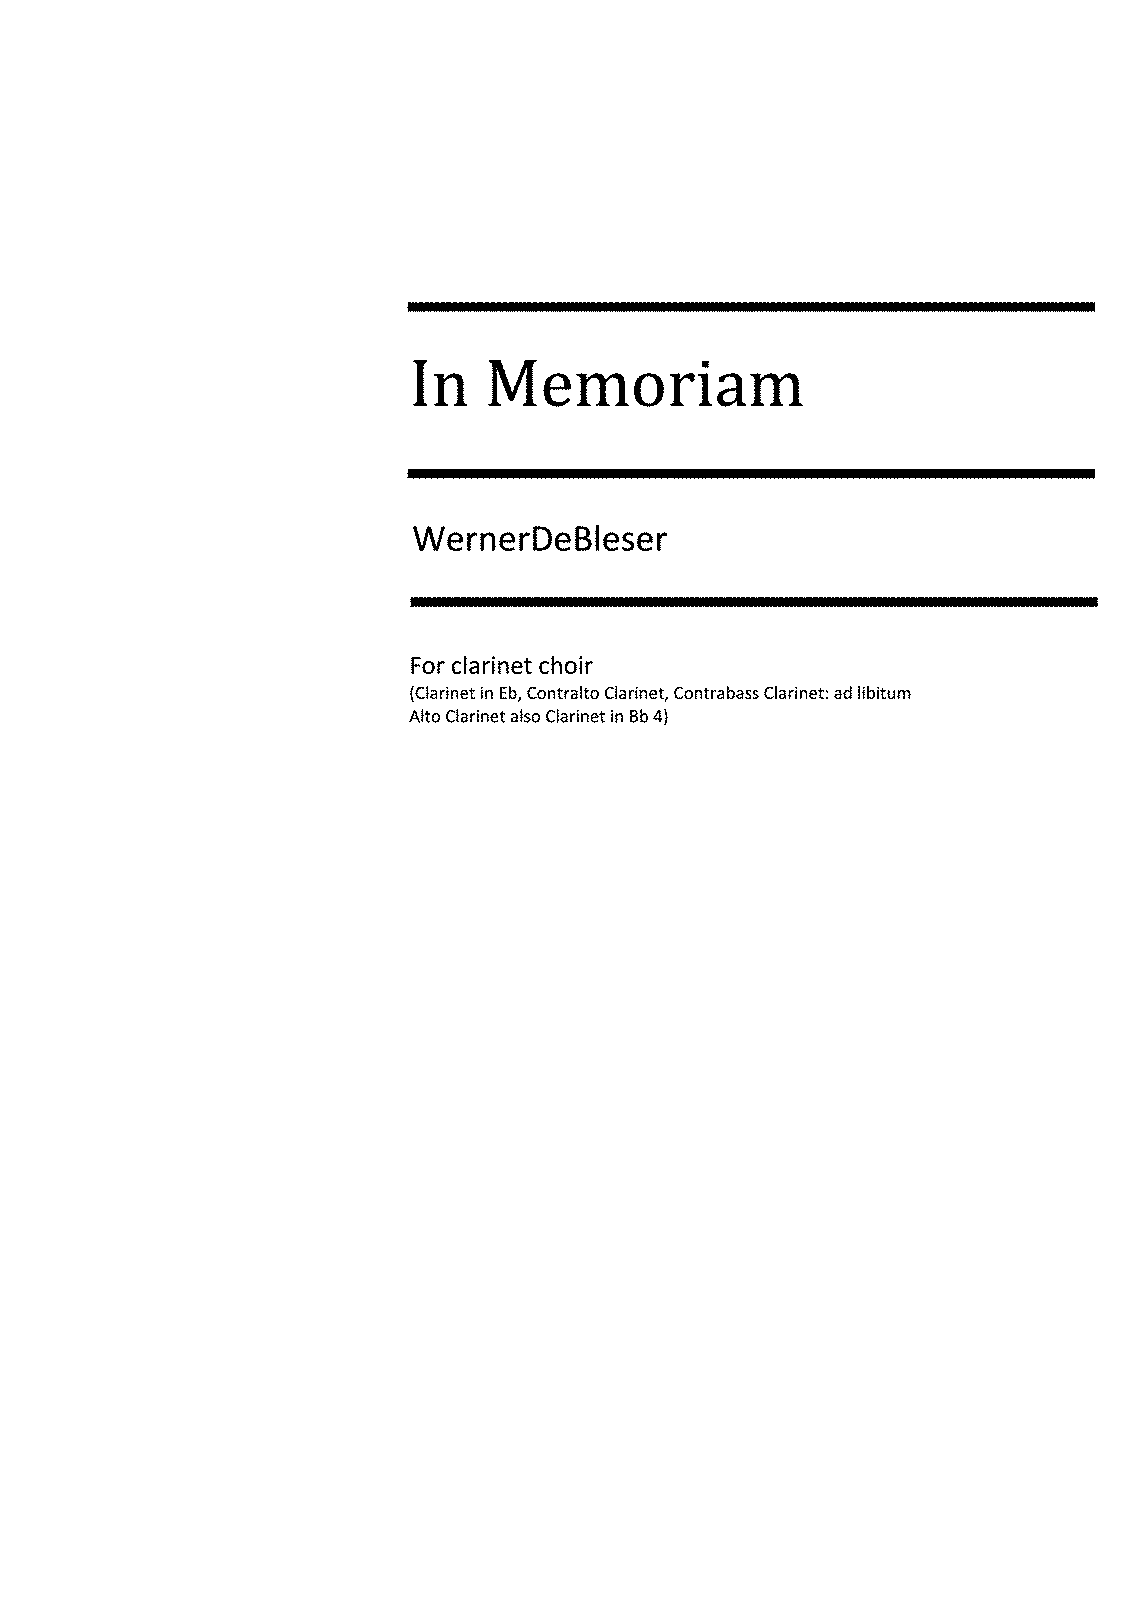 PMLP495901-Werner De Bleser - In Memoriam - 1 - eternal rest - CL Choir - score.pdf